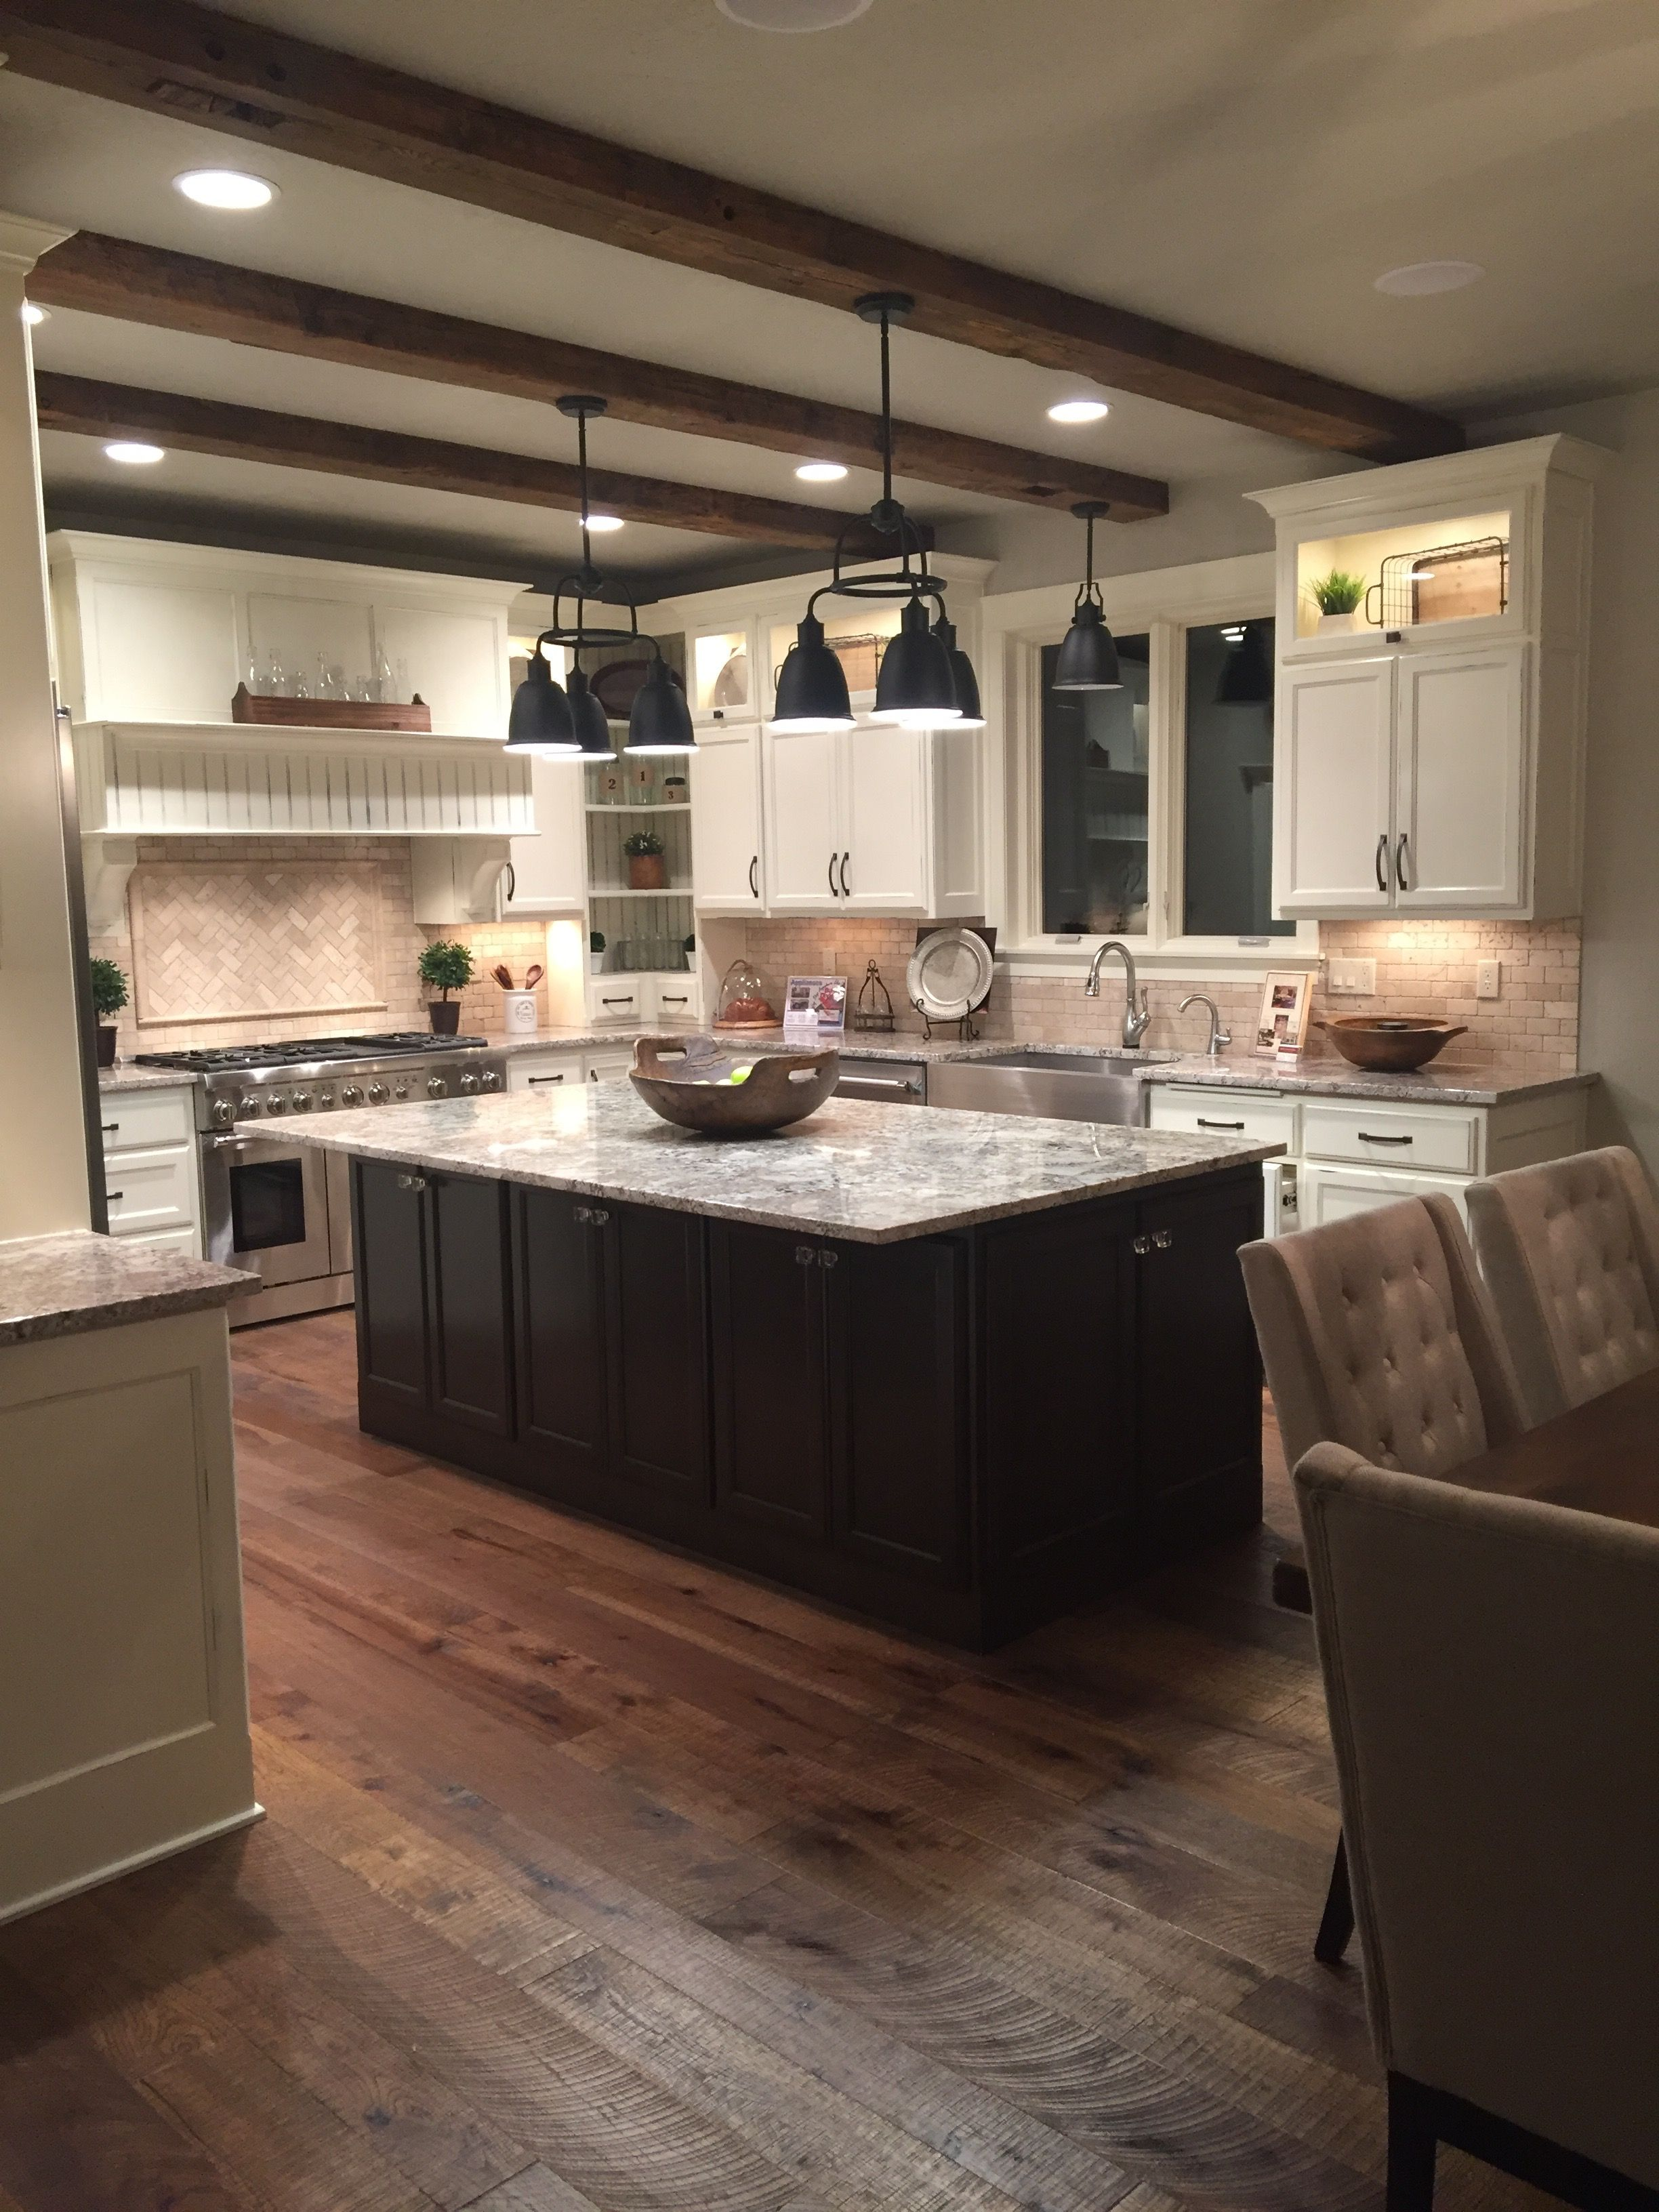 Amazing Family Kitchen With Reclaimed Wood Barn Beams And